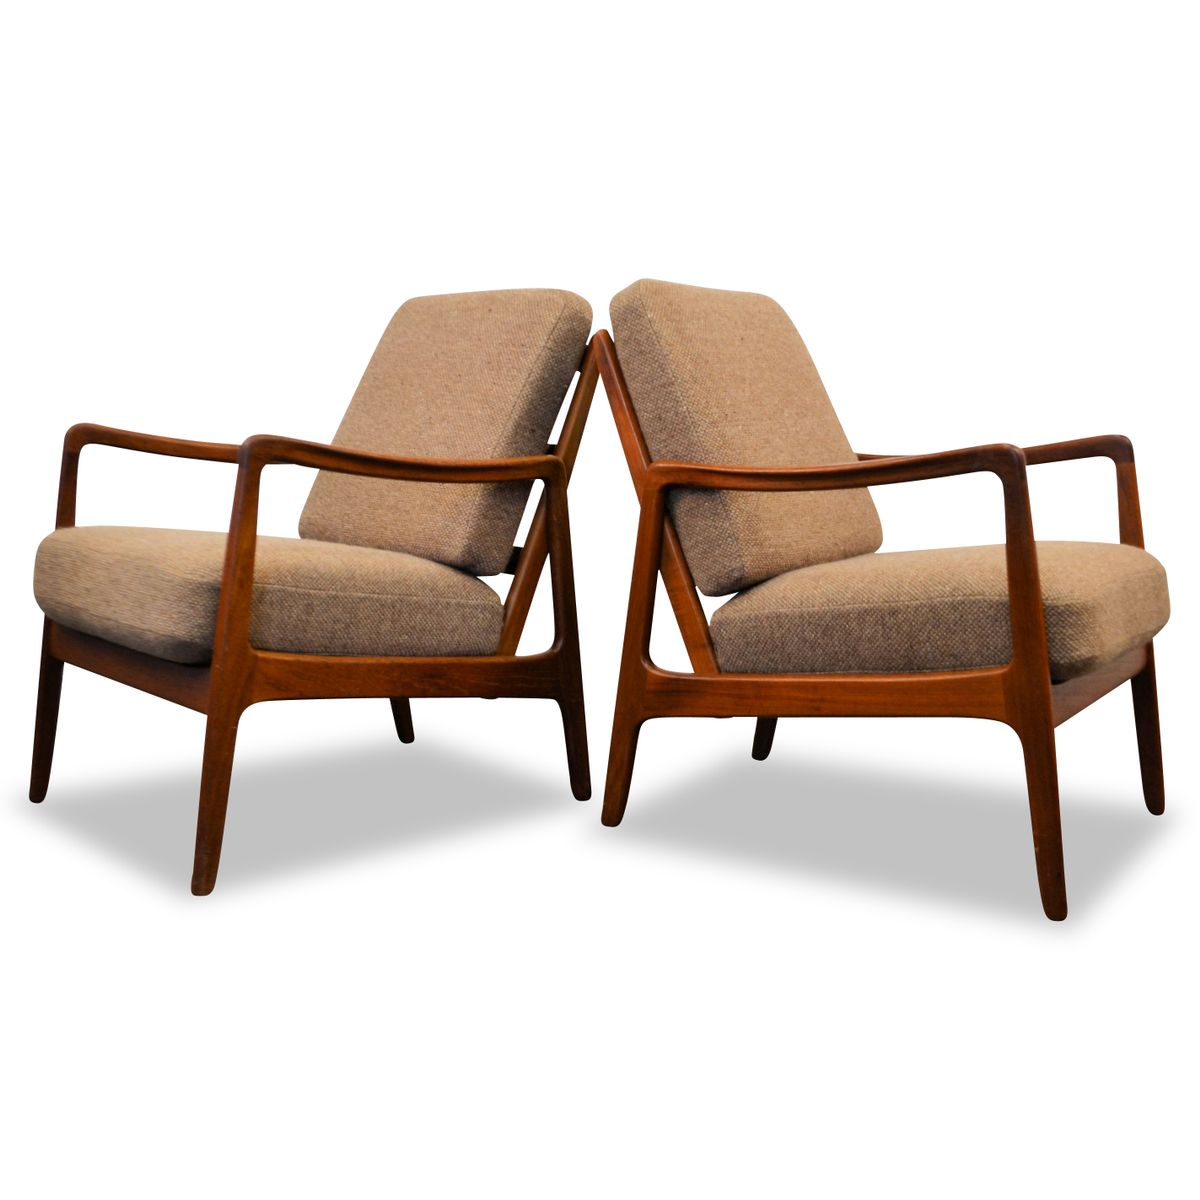 Danish Teak Lounge Chairs by Ole Wanscher for France & Son